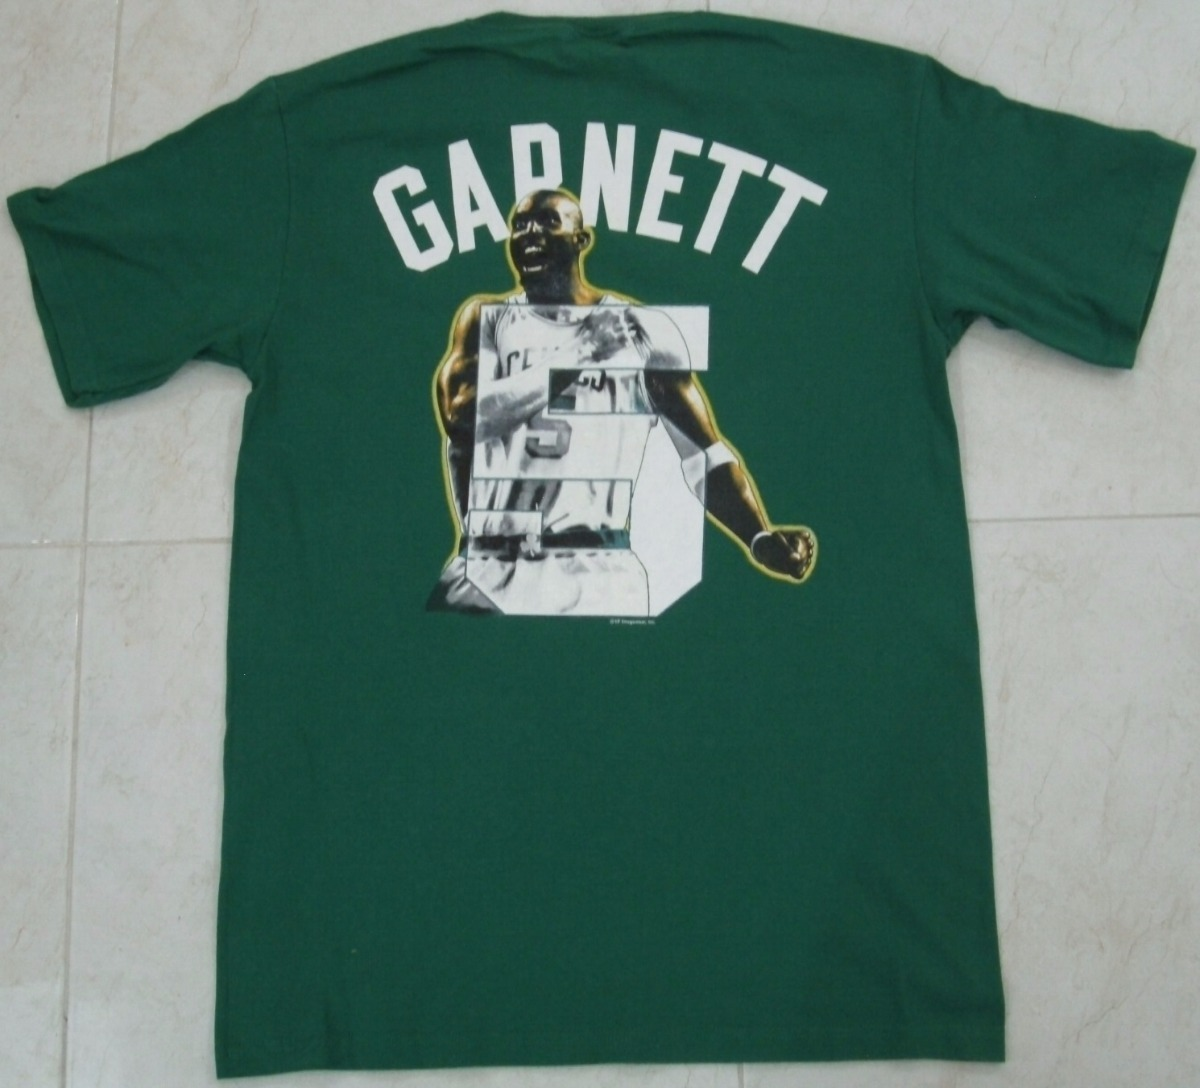 new style 6711d 74d23 Jersey Nba, Chico De Adulto, Kevin Garnett, Boston Celtics - $ 350.00